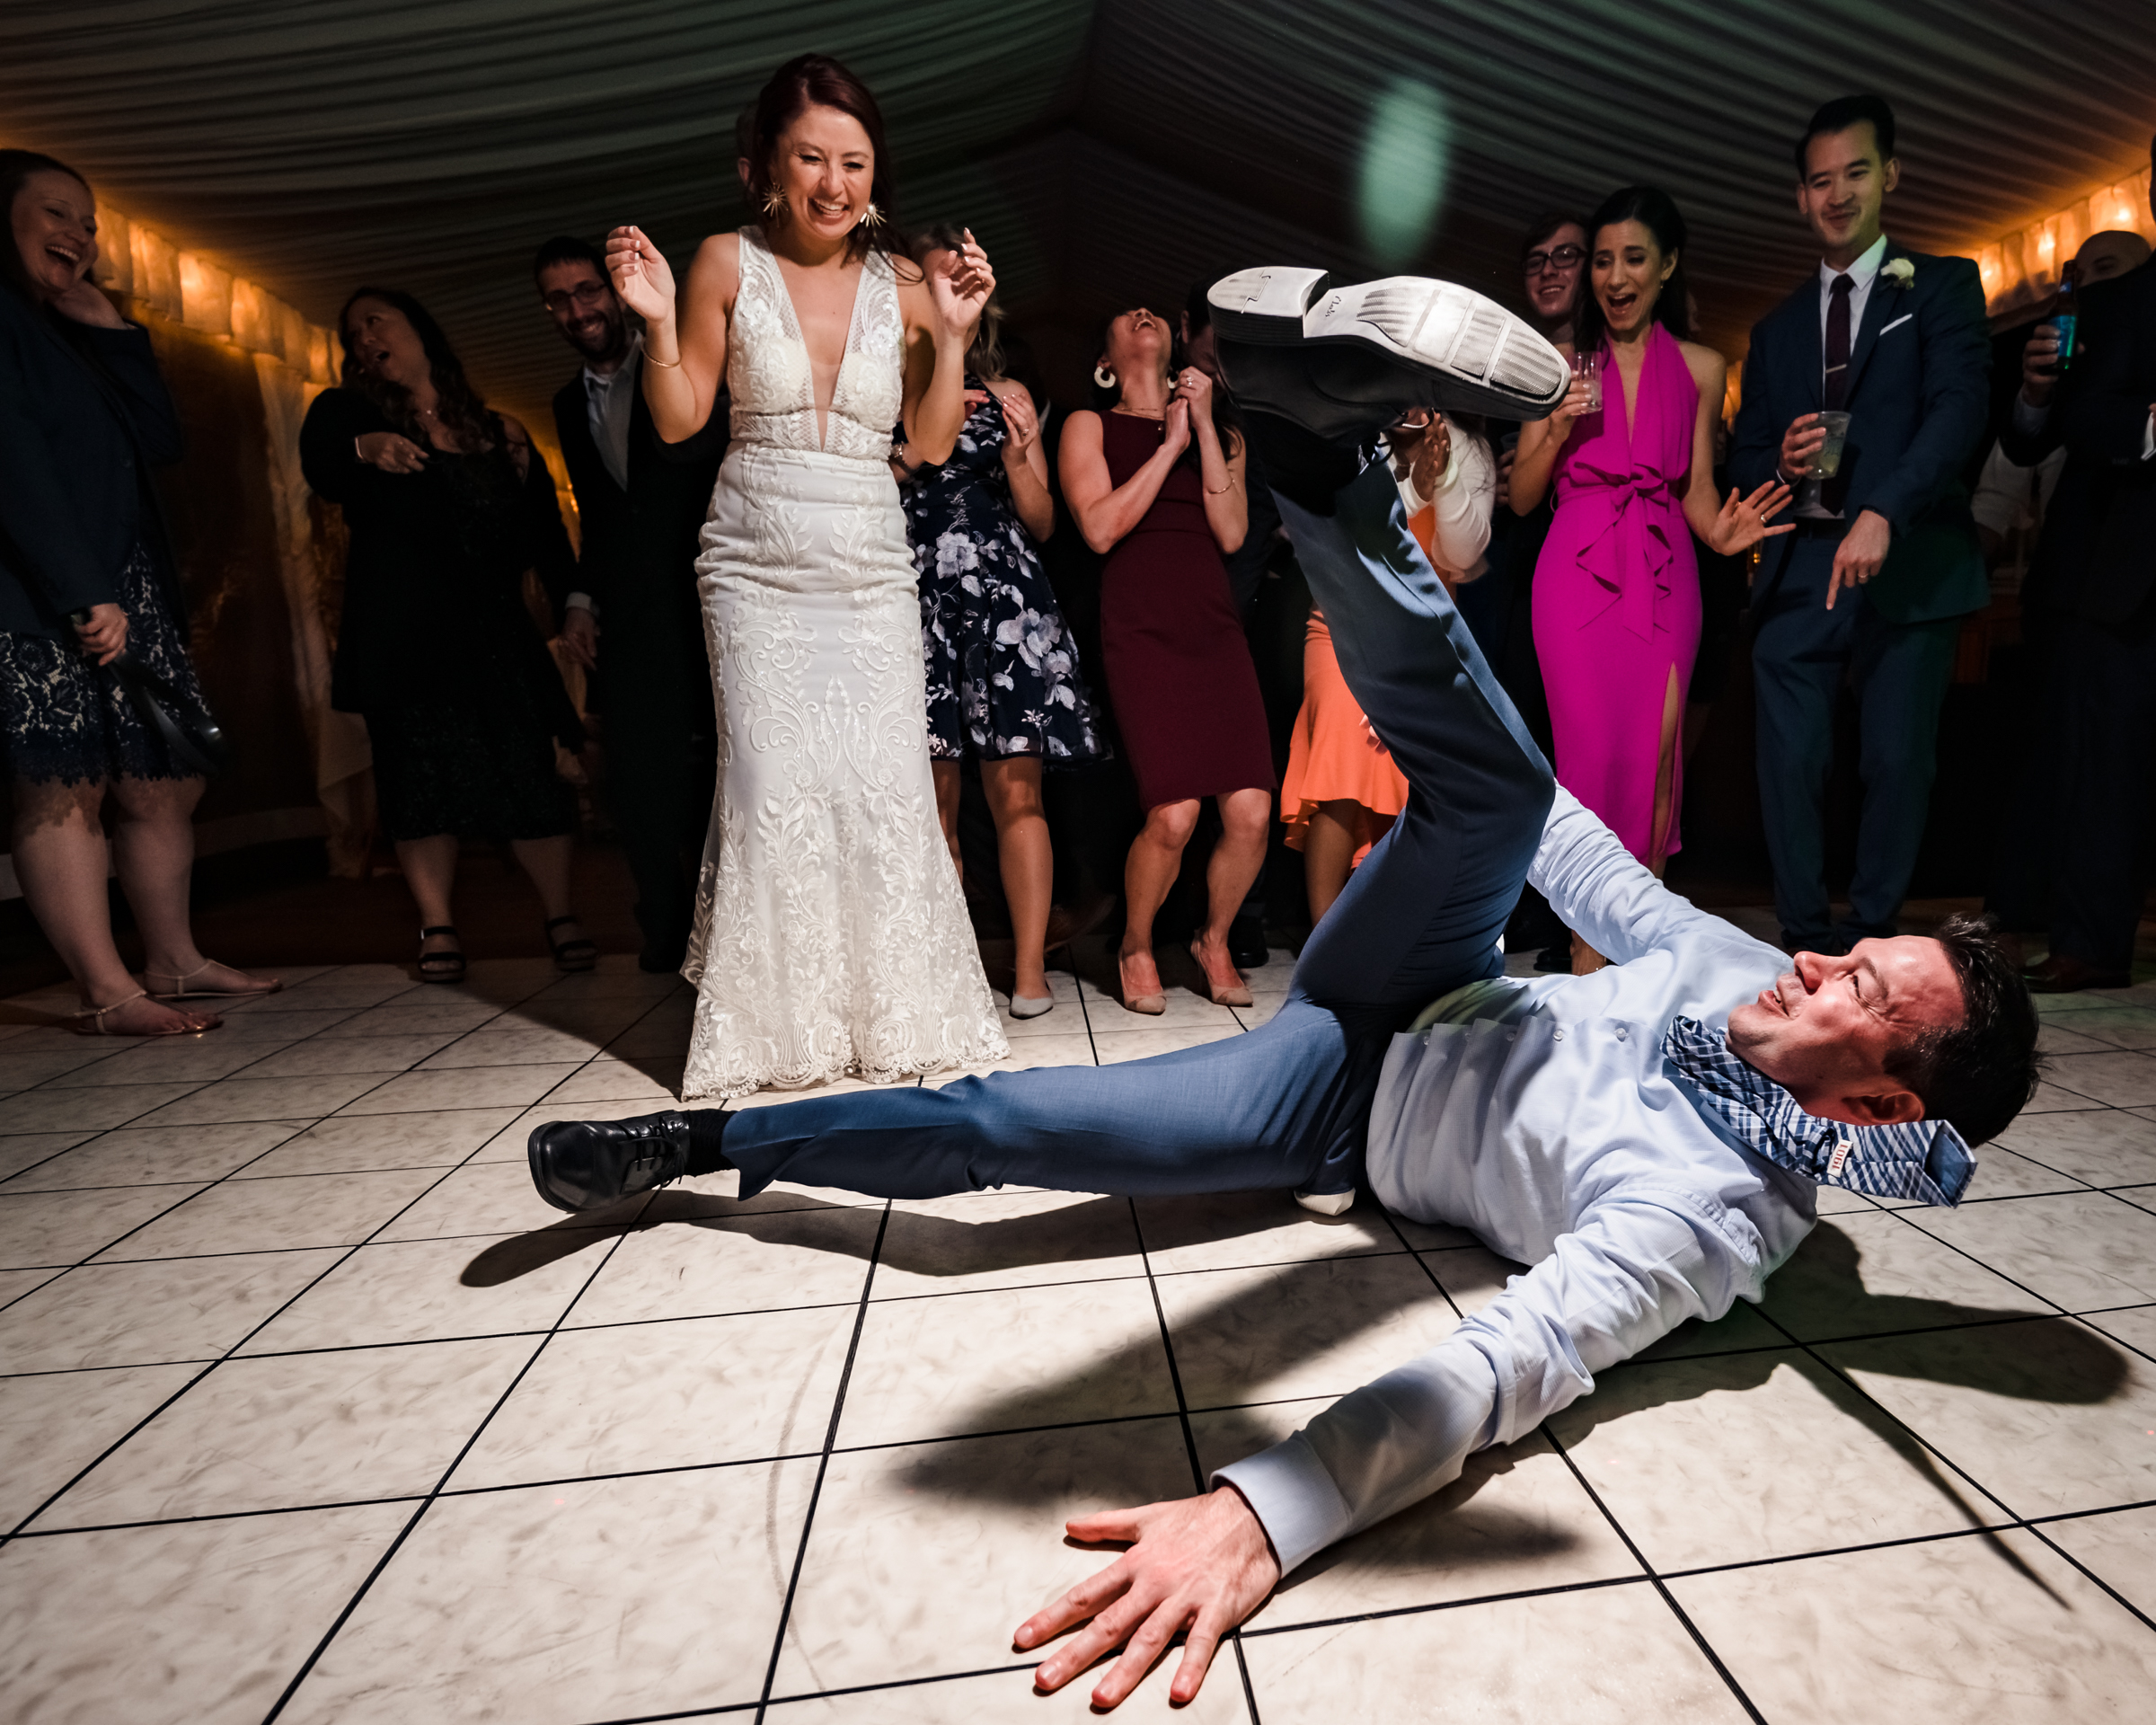 groom-shows-off-at-dance-party-michael-freas-photography